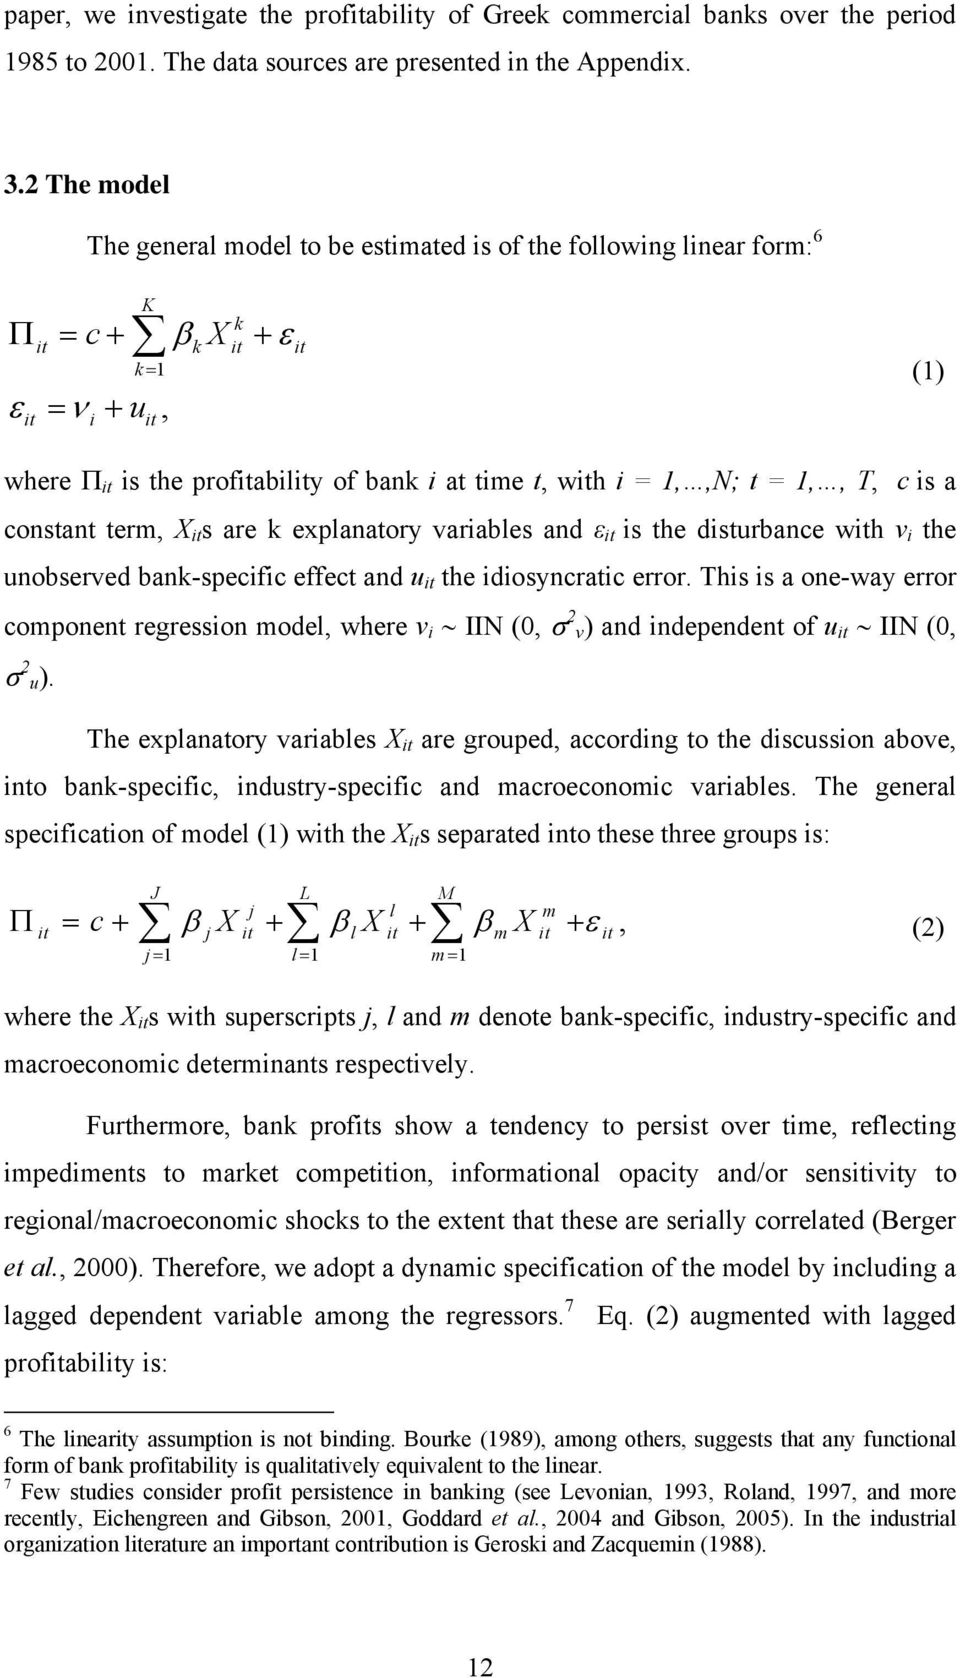 i = 1,,N; t = 1,, T, cb constant term, ΧBitBs are k explanatory variables and εbit Bis the disturbance with vbib unobserved bank-specific effect and ubitb the idiosyncratic error.